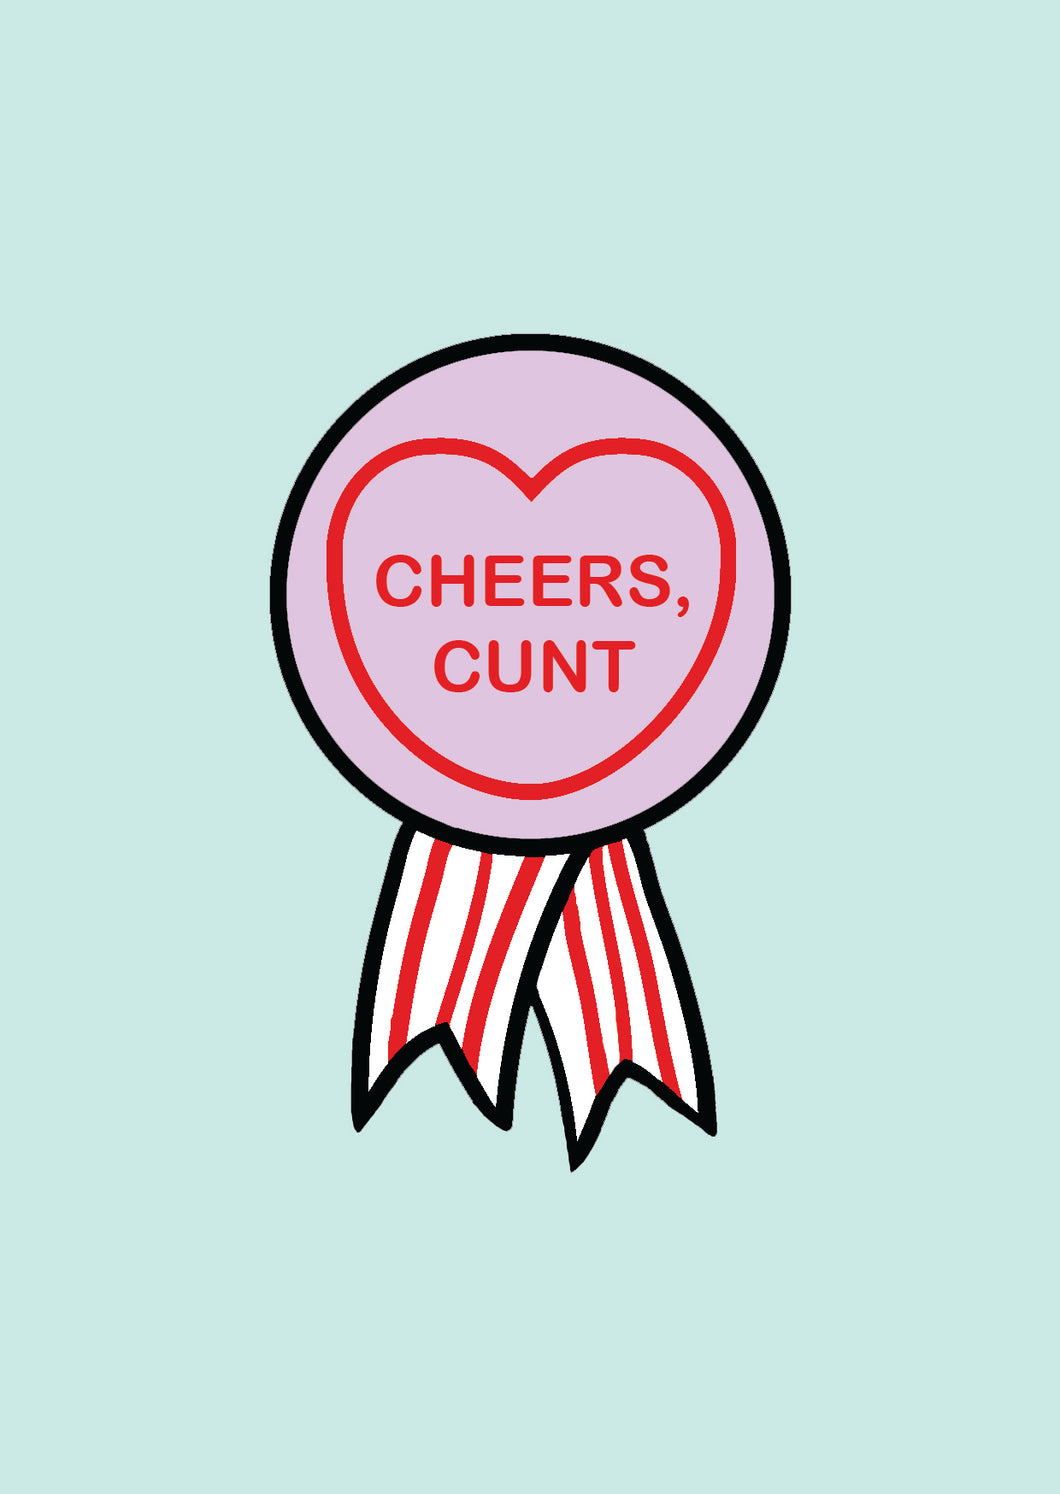 Candy Heart Greeting Card - Cheers, Cunt